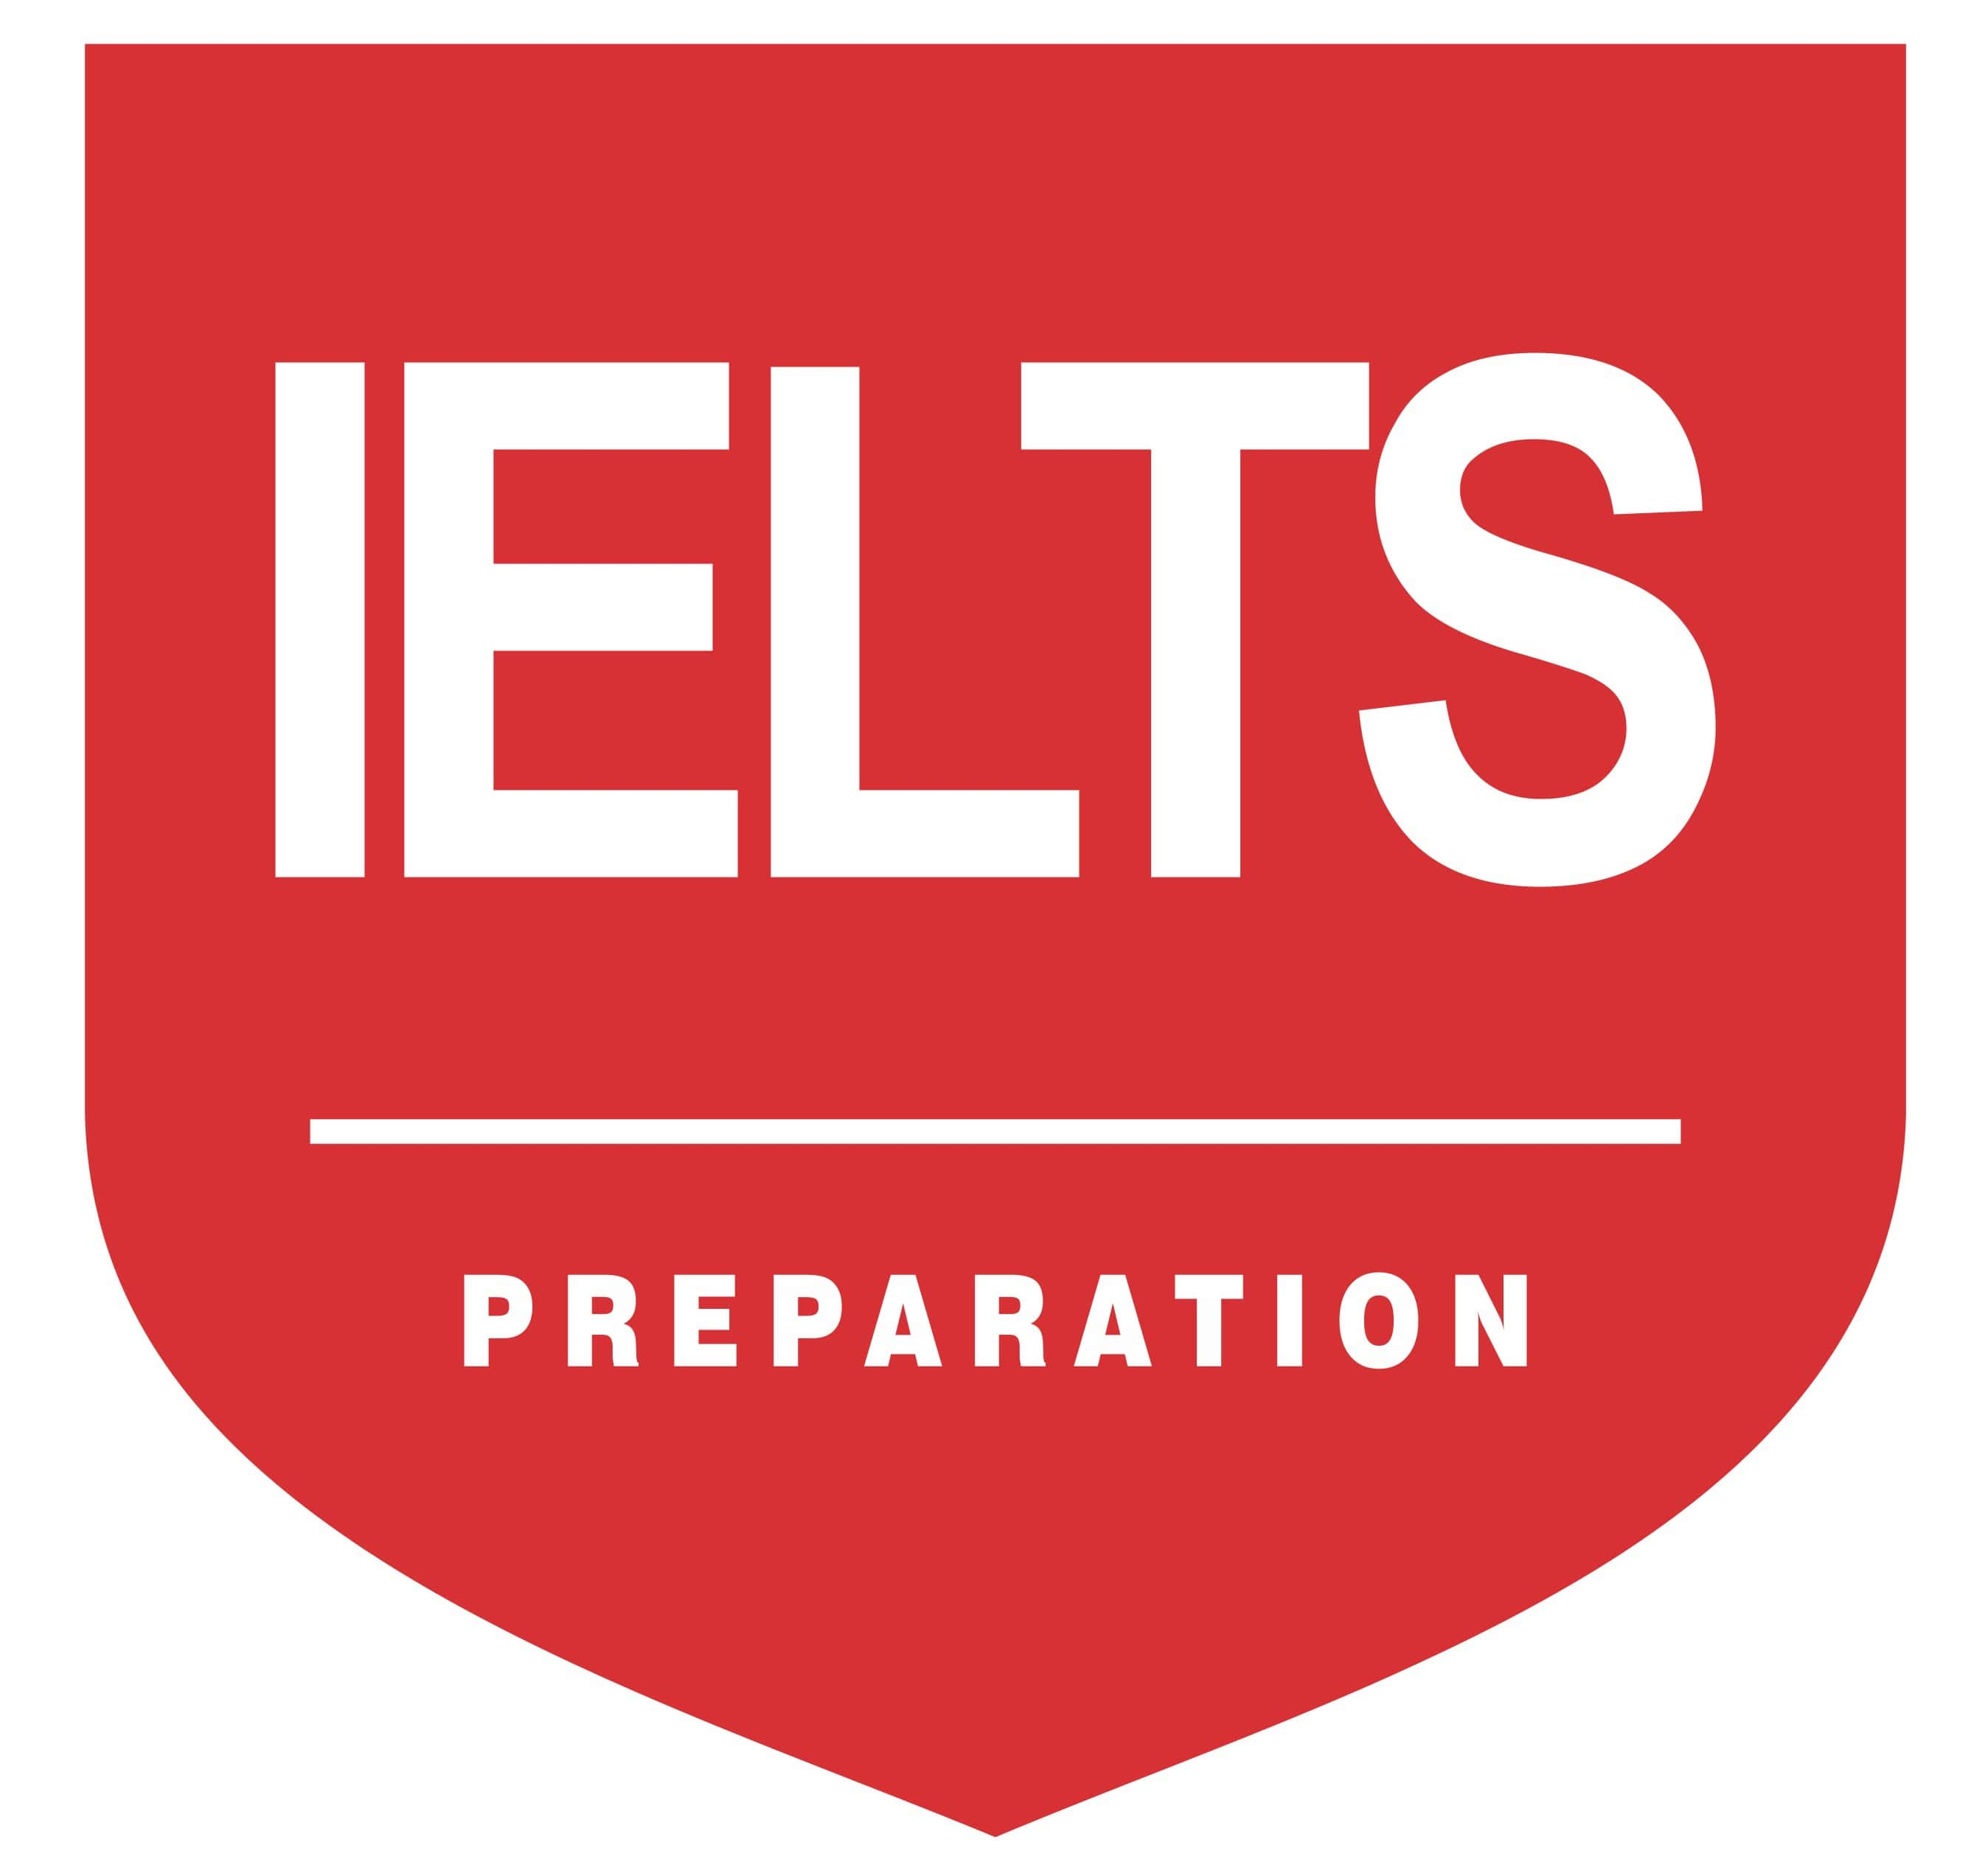 Подготовка за IELTS, ielts preparation, podgotovka ielts, ielts, preparation english